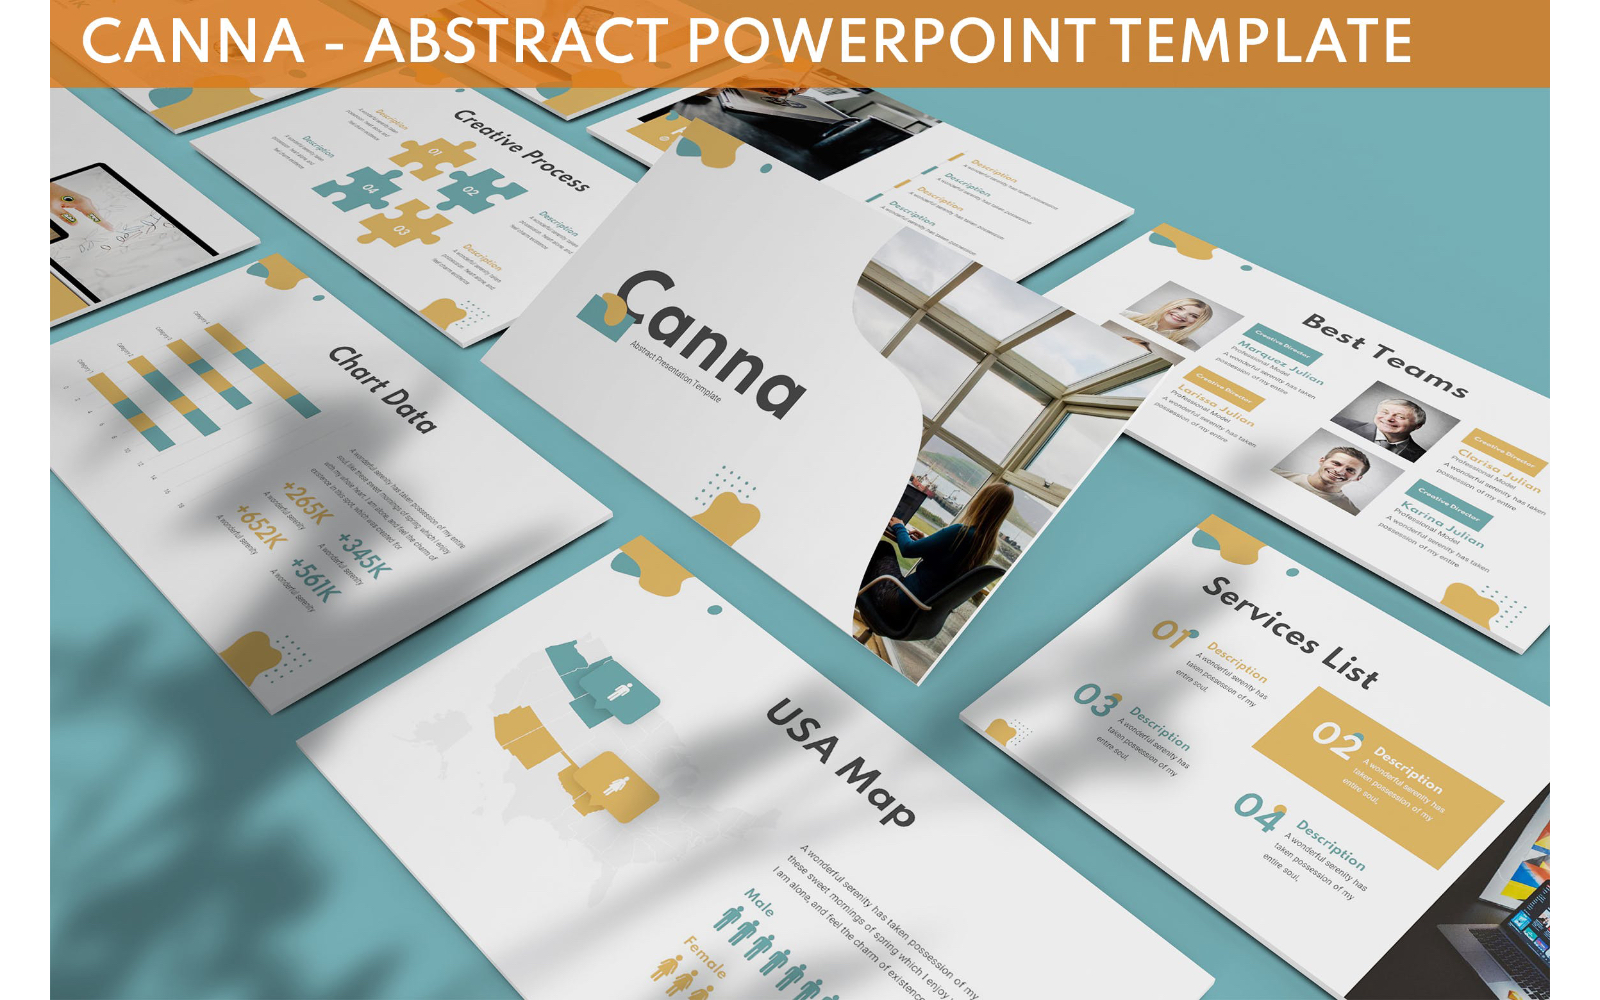 Canna - Abstract Powerpoint Template